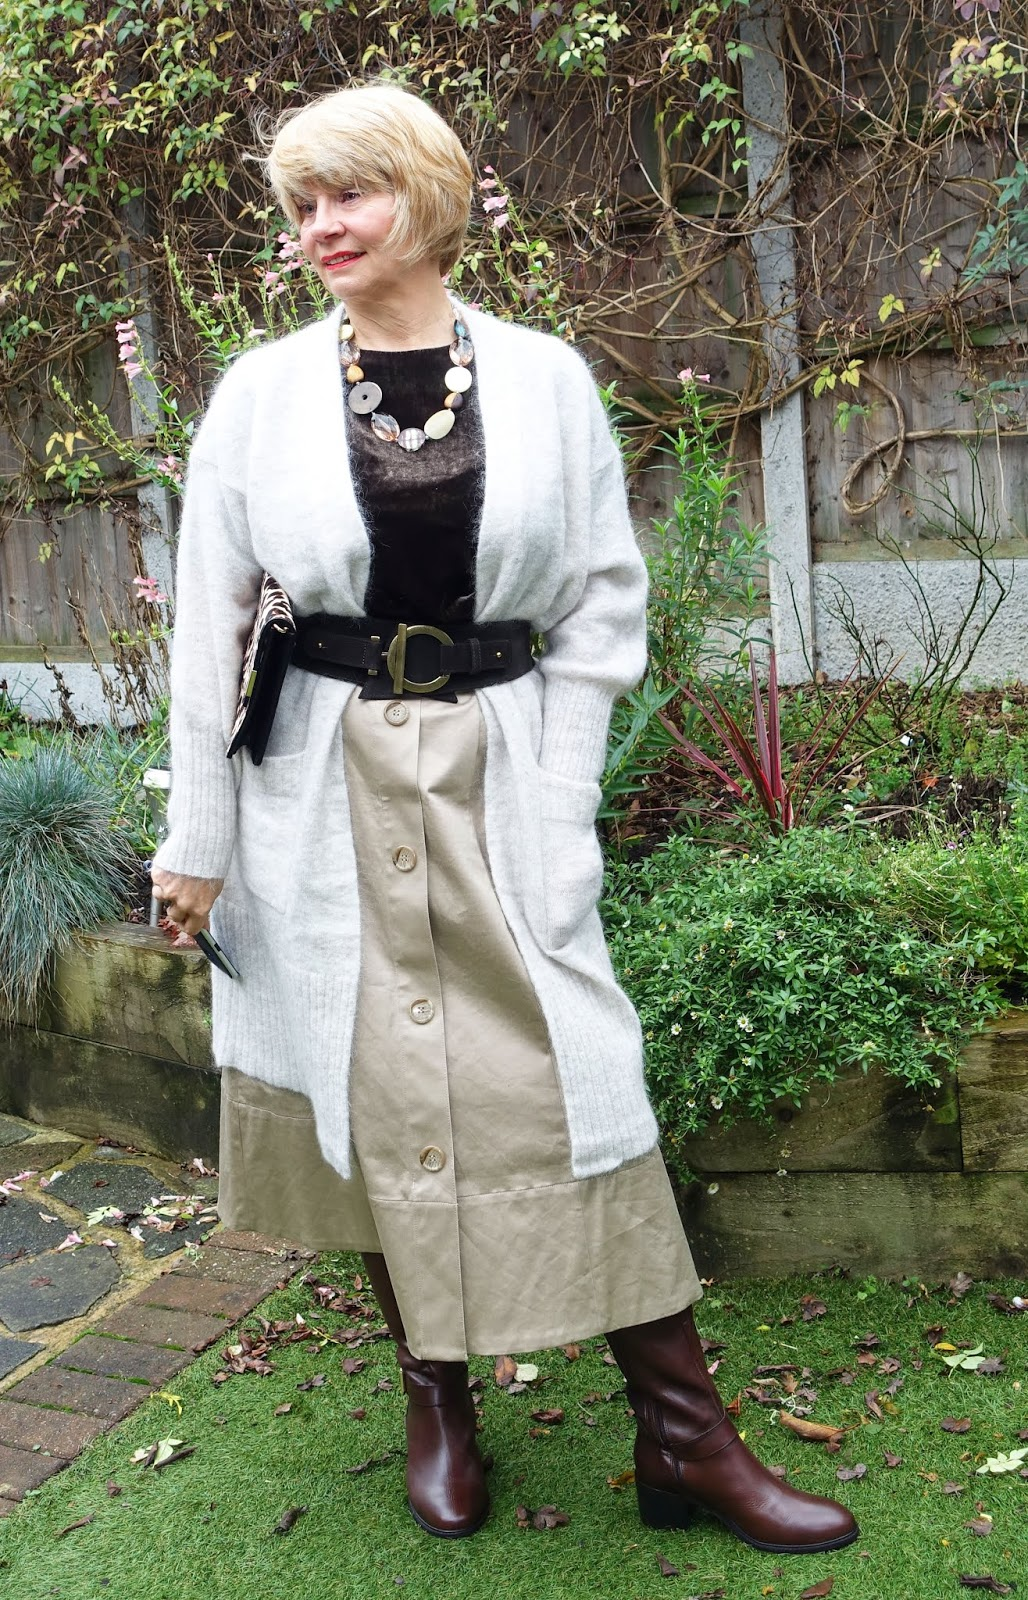 Gail Hanlon from Is This Mutton? in camel midi skirt with mushroom coatigan, brown velvet top and long brown leather boots